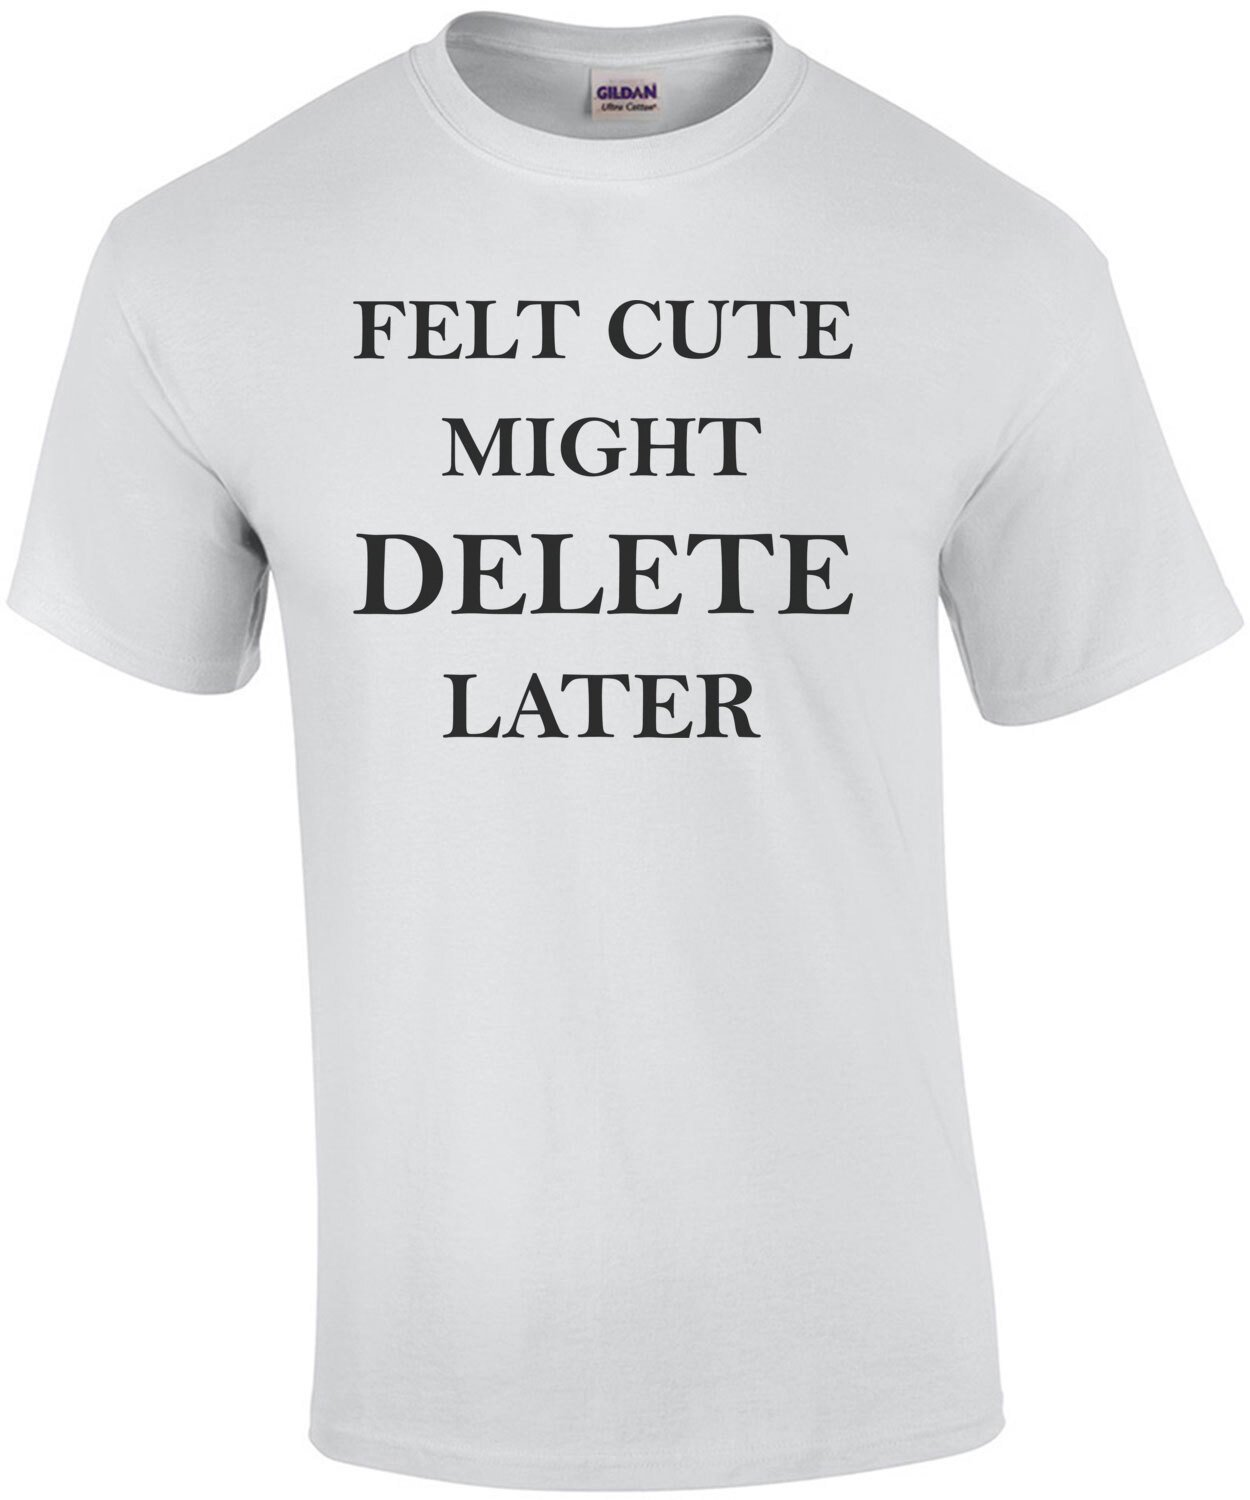 Felt Cute Might Delete Later - funny ladies t-shirt